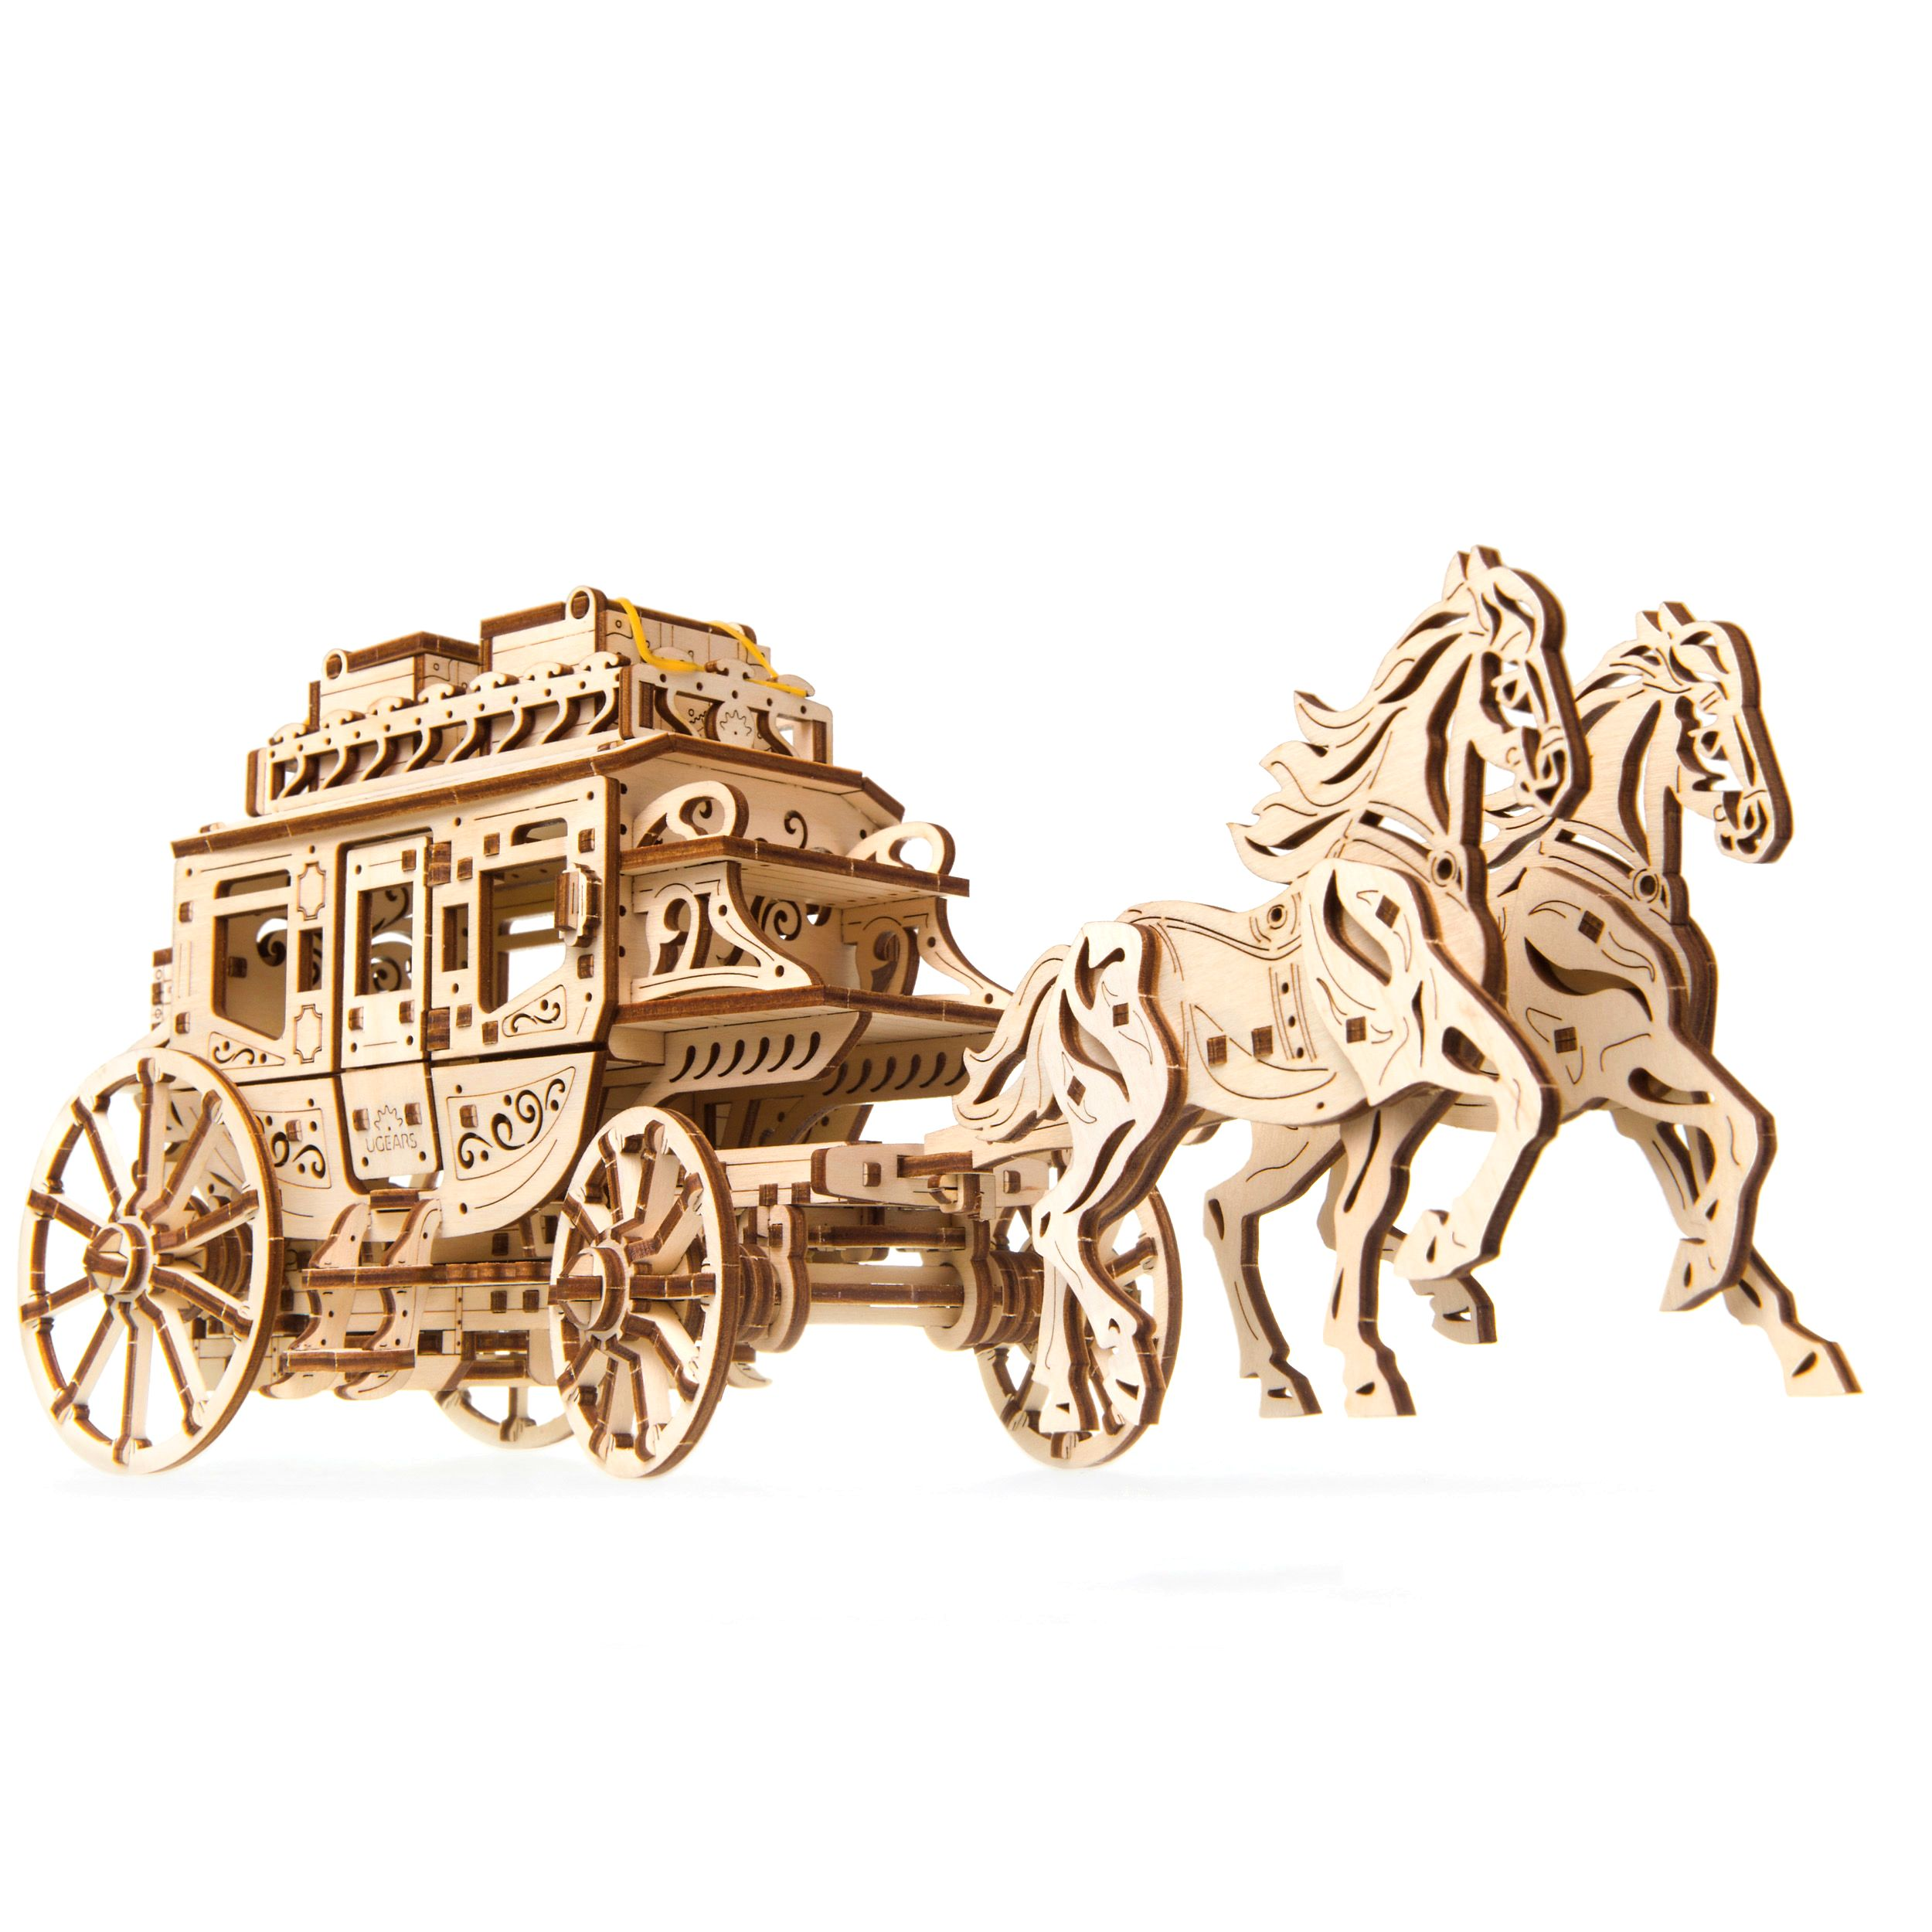 Ugears - Stagecoach - Laser Cut Wood - 248 Parts